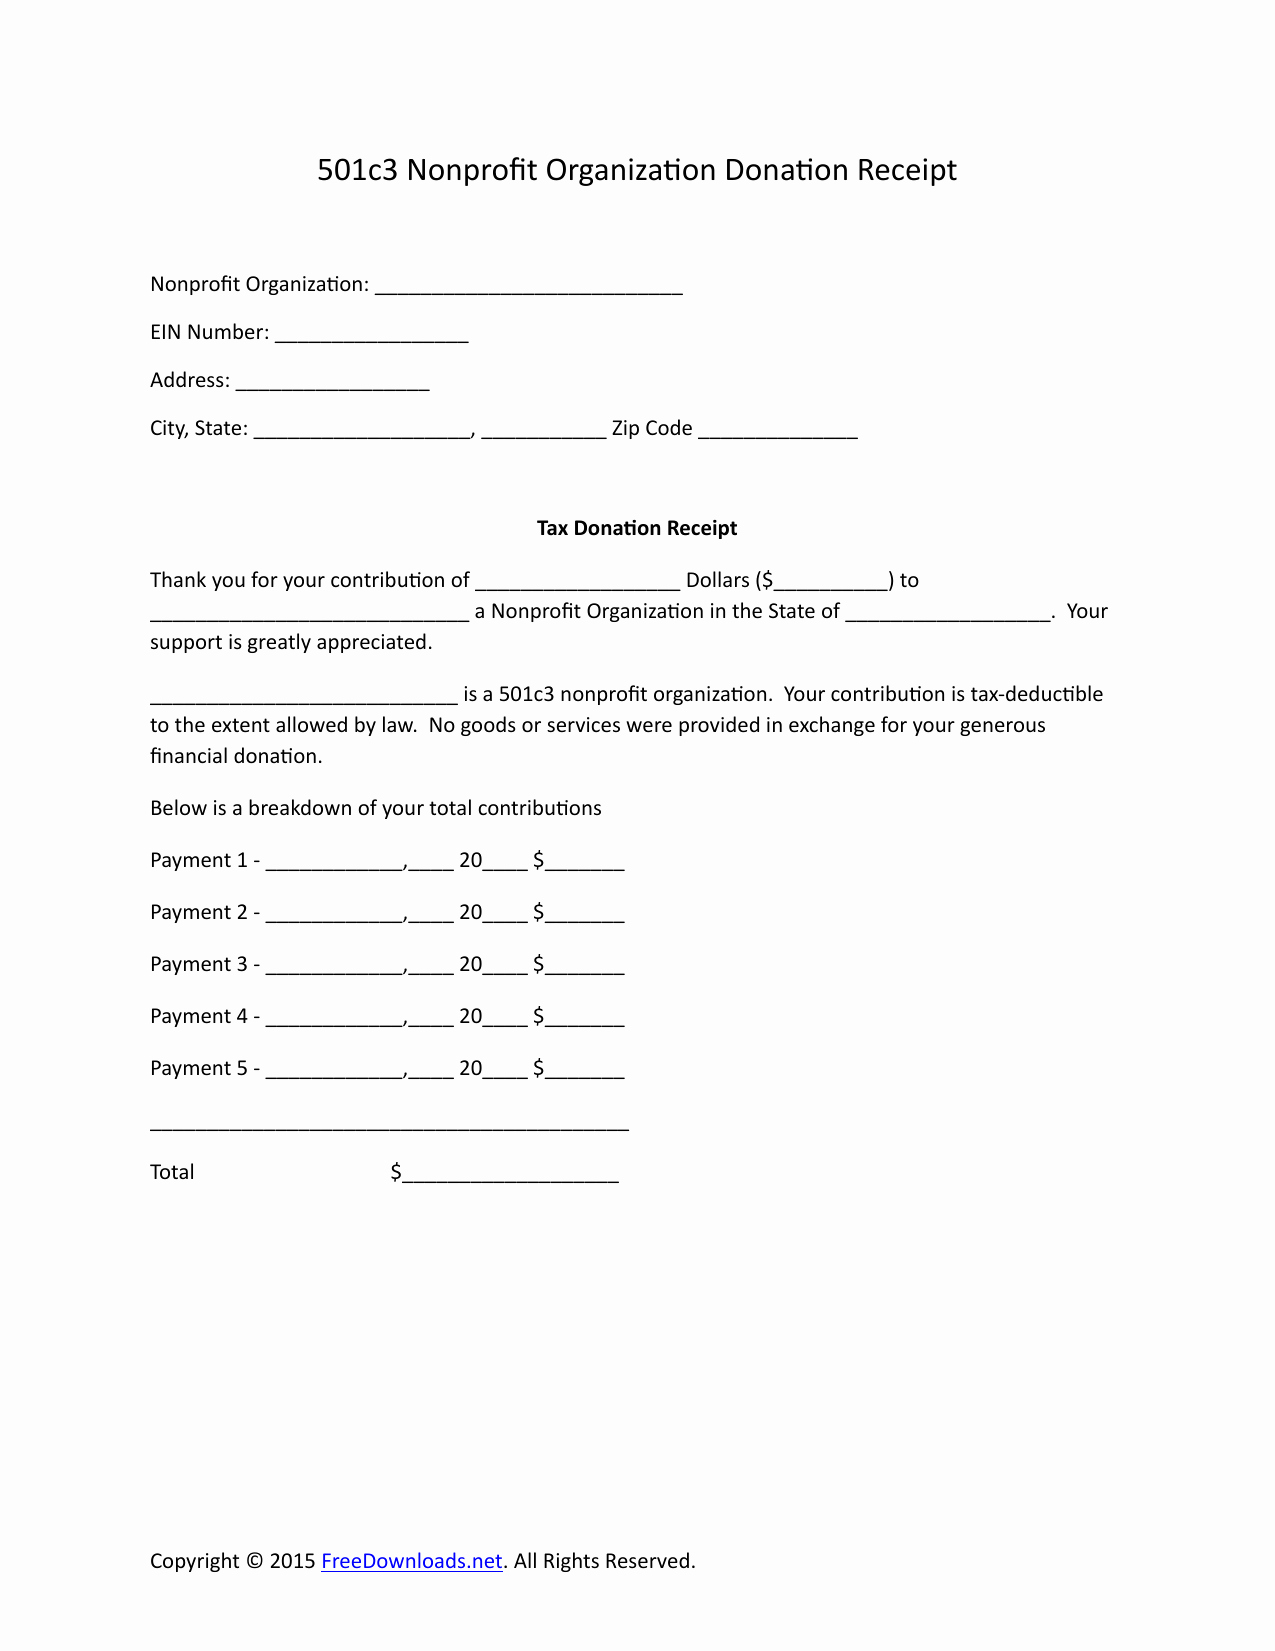 Non Profit Donation Receipt form Beautiful Download 501c3 Donation Receipt Letter for Tax Purposes